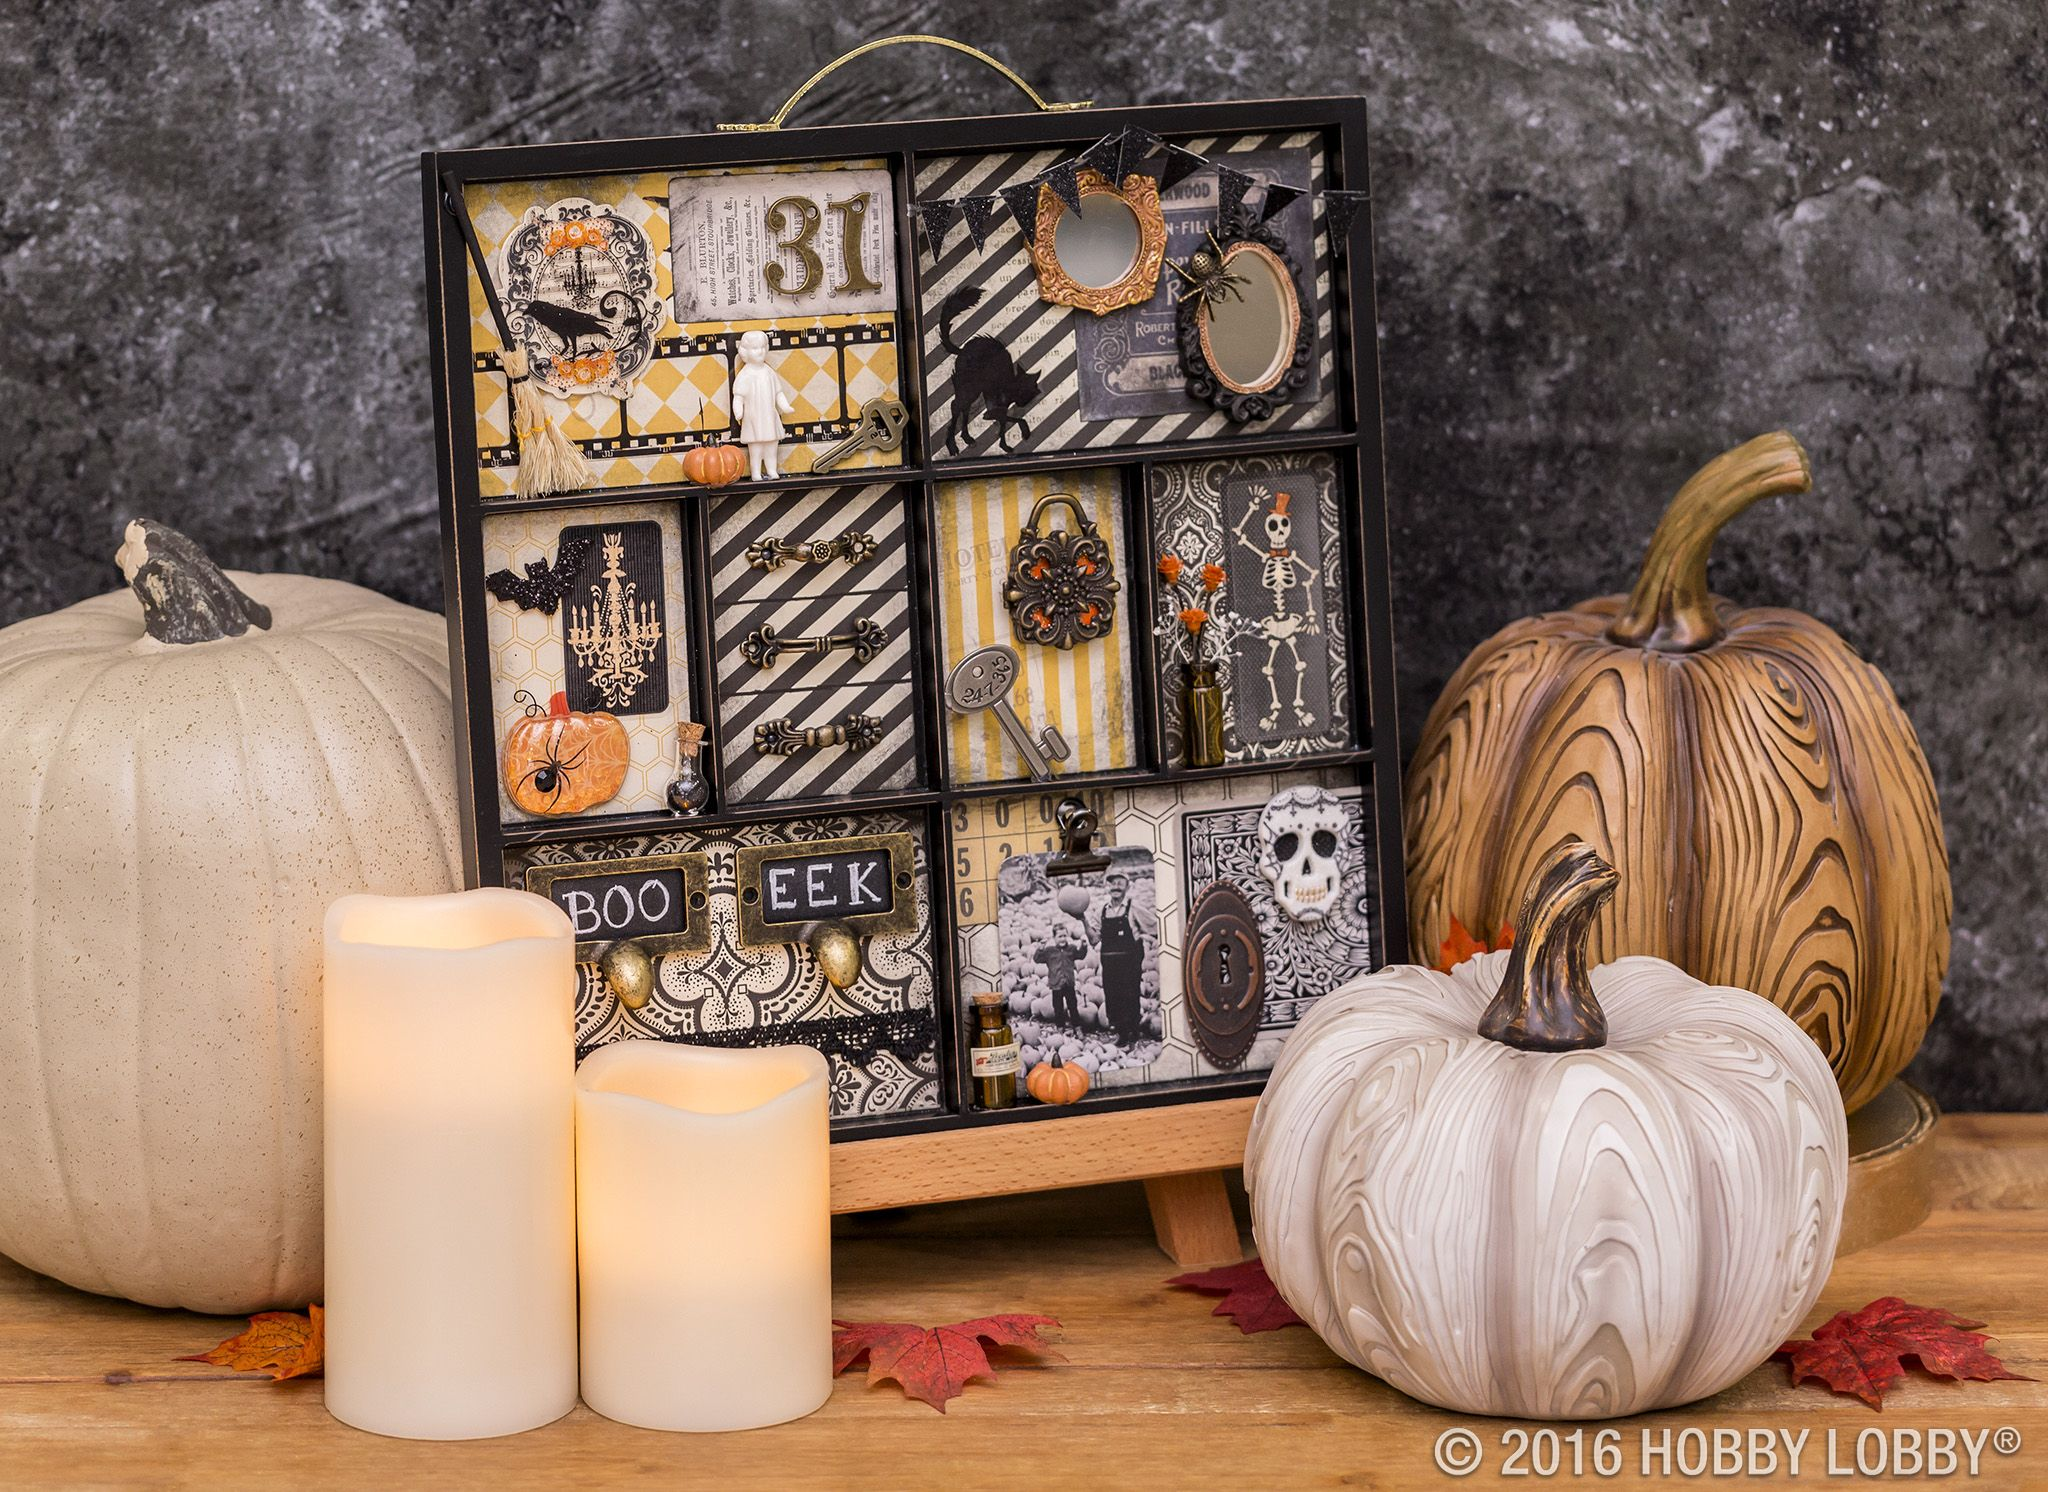 Create a monster mash-up Halloween tray by gluing quirky figurines